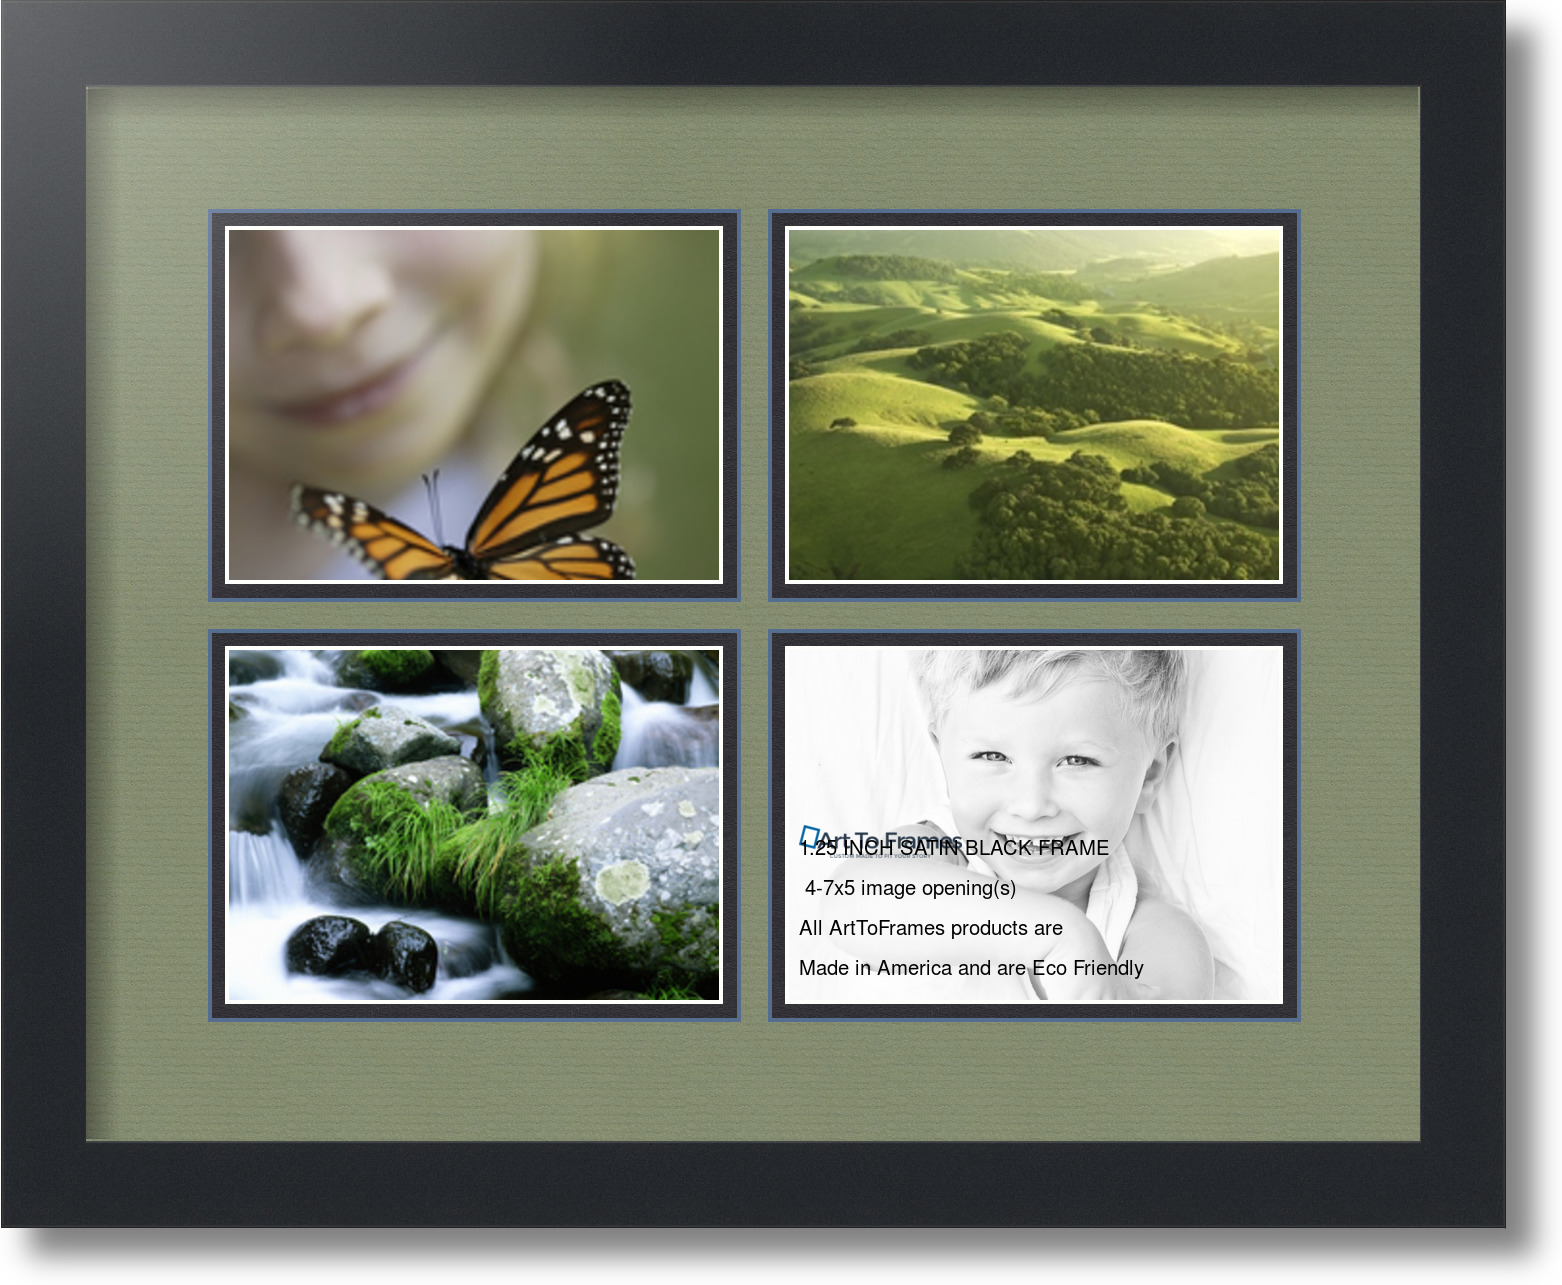 Perfect Walmart Collage Frames Image - Framed Art Ideas ...